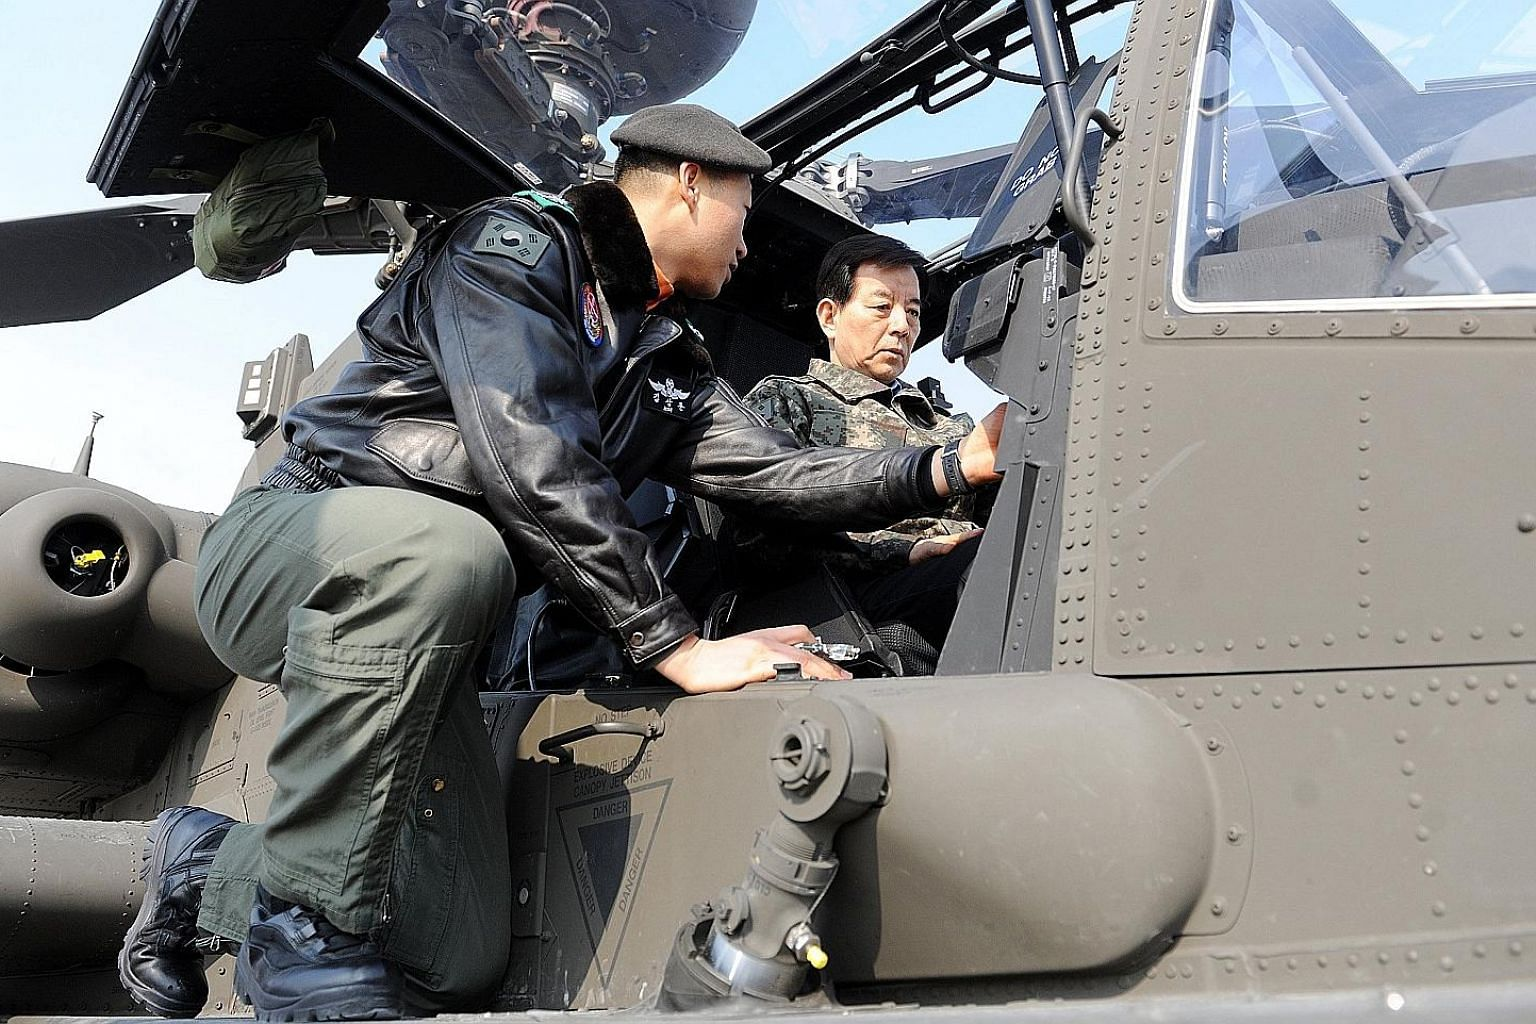 Above: South Korean Defence Minister Han Min Koo (right) inspecting an Apache helicopter during a visit to the Air Operations Command in South Korea on Monday. Left: A soldier training on the launch pad of a Patriot PAC-3 advanced missile, at a unit